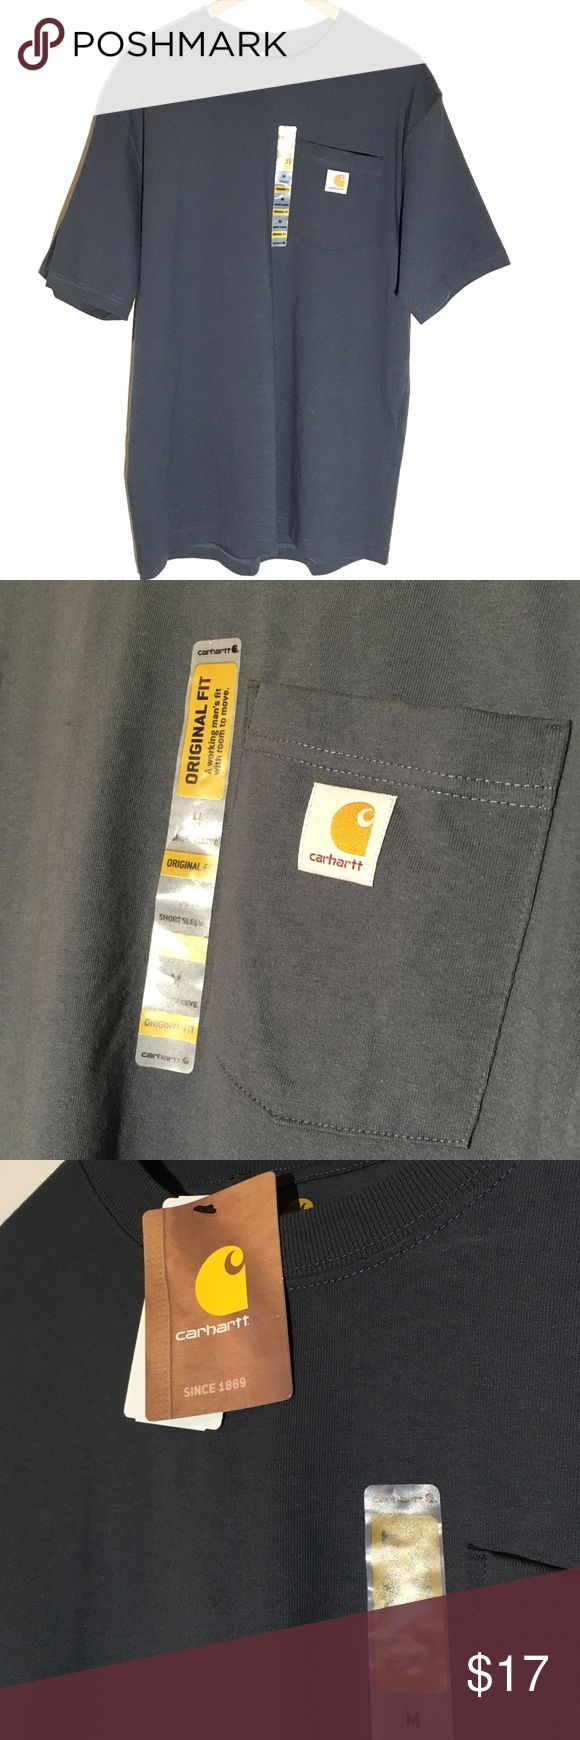 Carhatt NWT workwear pocket tee New with tags. Nice slate blue.  men's heavyweight t-shirt that gives you room to move. An essential basic for a long day on the job, this men's t-shirt is made of comfortable cotton jersey and cut generously for a roomy fit.  Rib-knit crewneck holds its shape throughout the workday.  Side-seam construction minimizes twisting.  Tagless neck label. Carhartt Shirts Tees - Short Sleeve